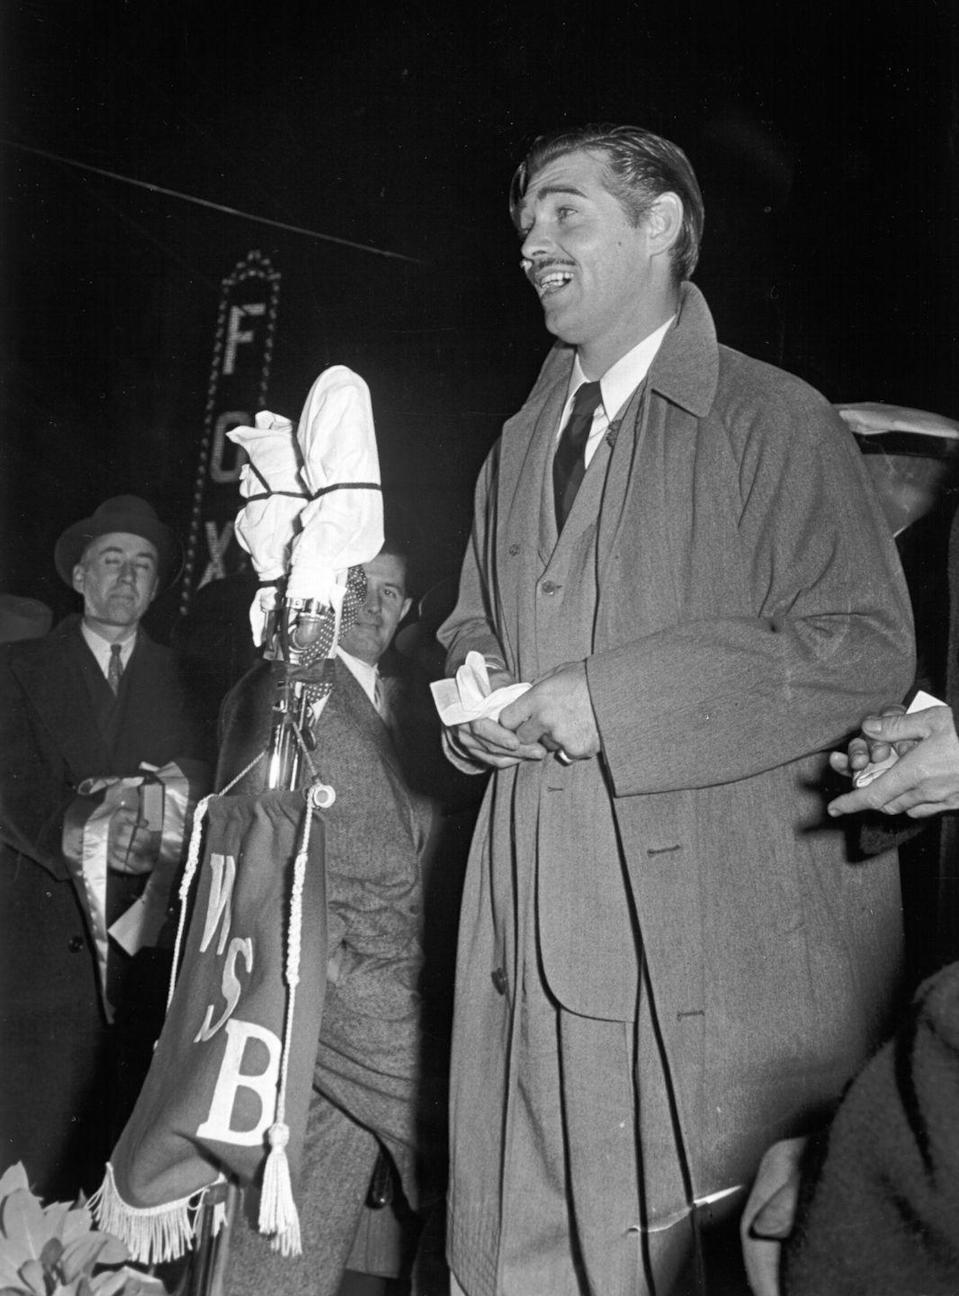 <p>Clark Gable makes a speech at the premiere of <em>Gone With the Wind</em> in Atlanta, Georgia, on December 15, 1939.</p>